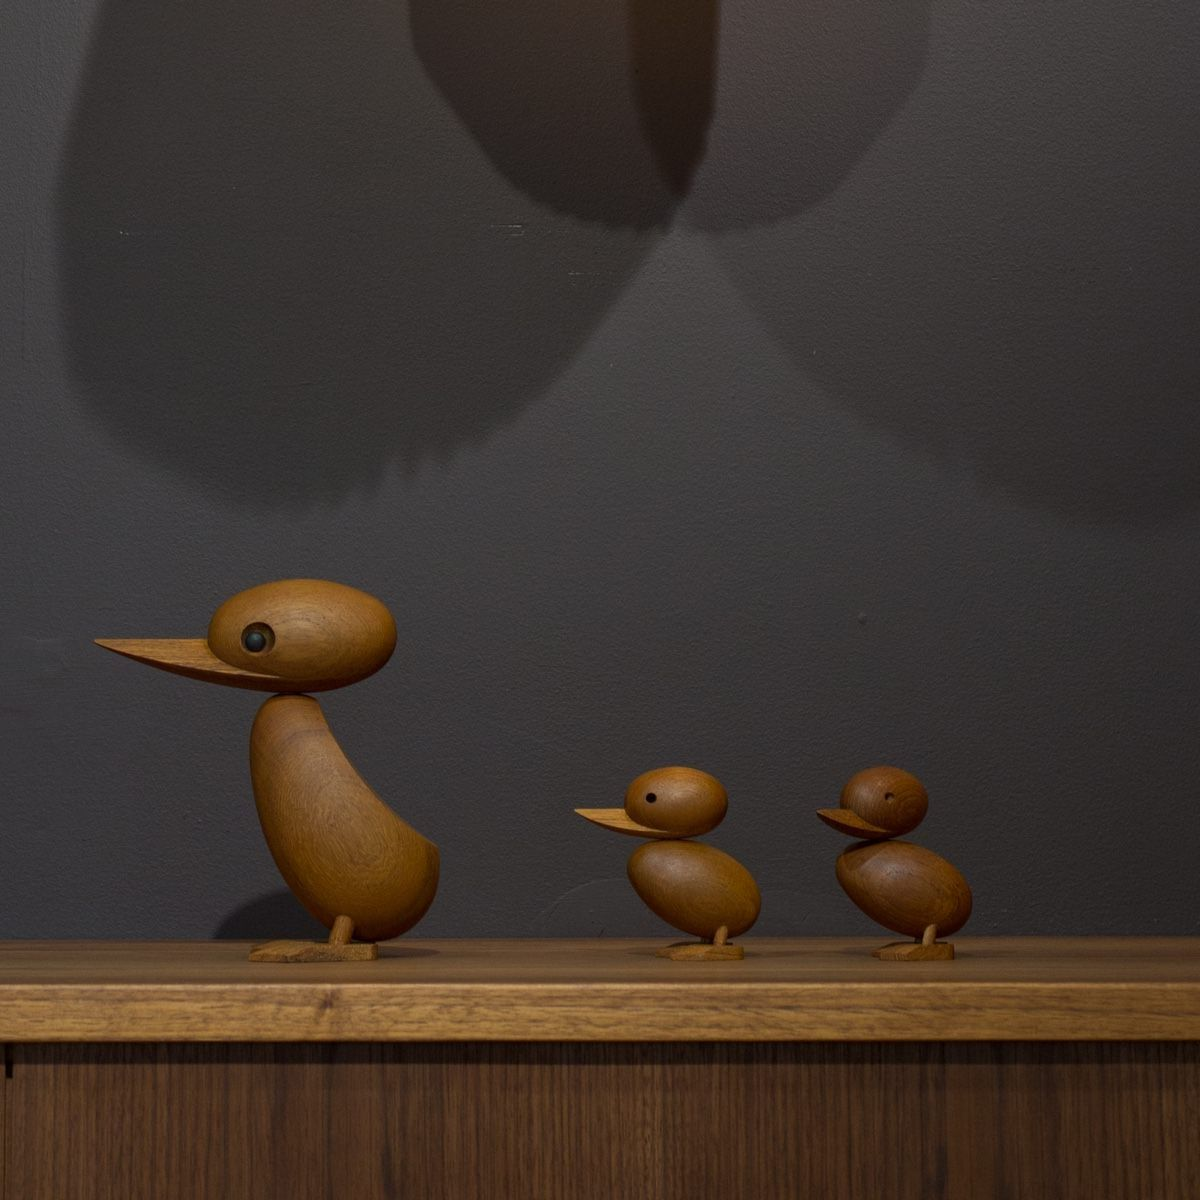 Architect Made Duckling